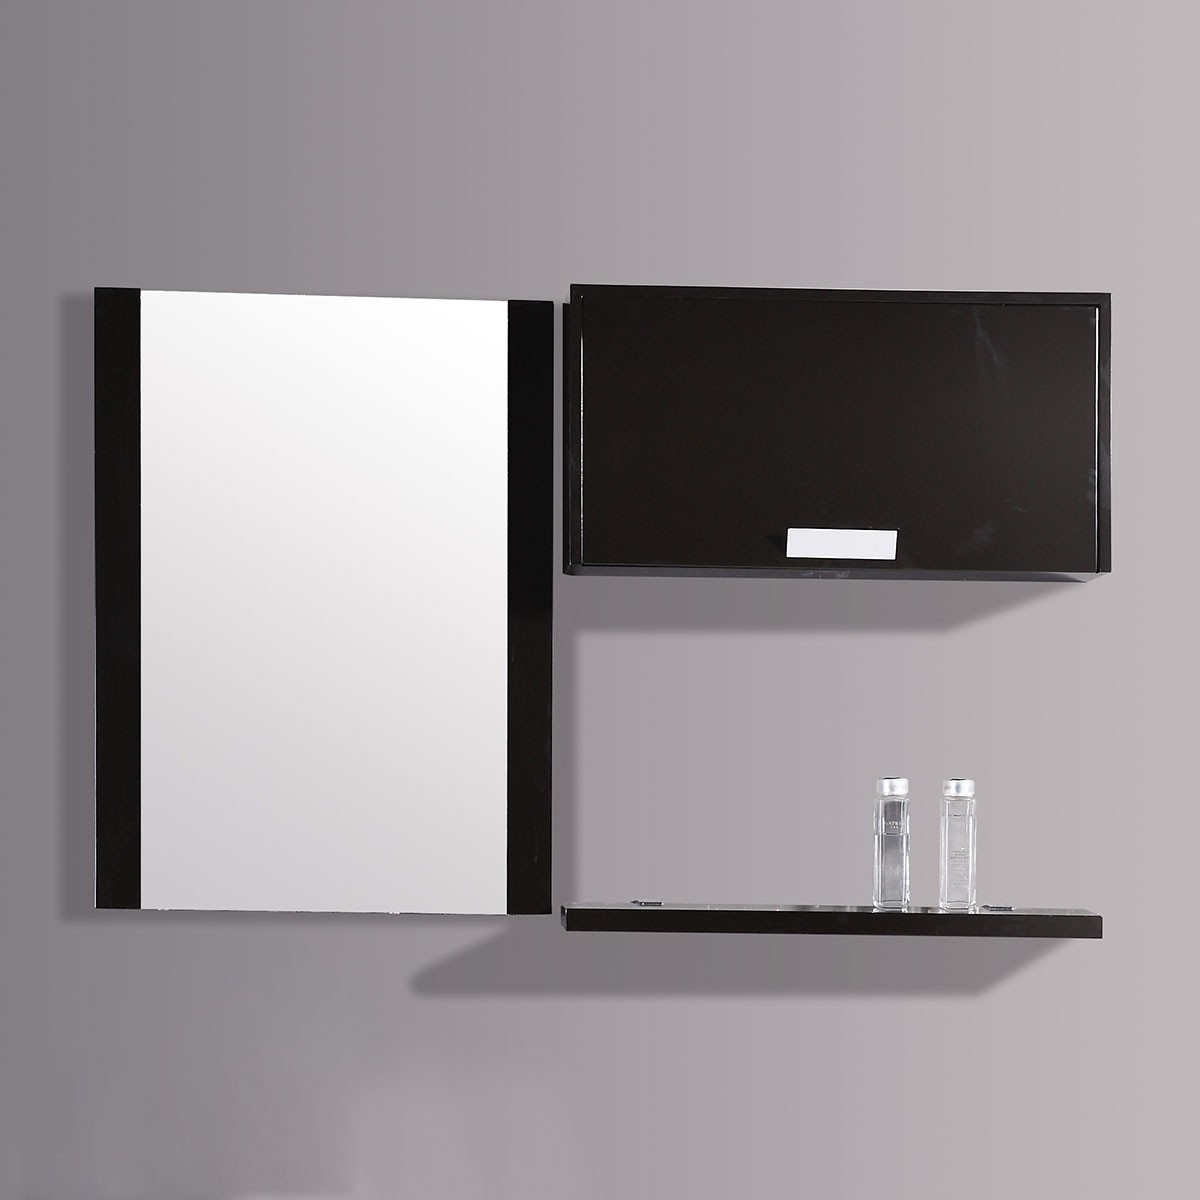 24 x 31 In. Mirror with Espresso Side Cabinet (DK-T9099B-M)